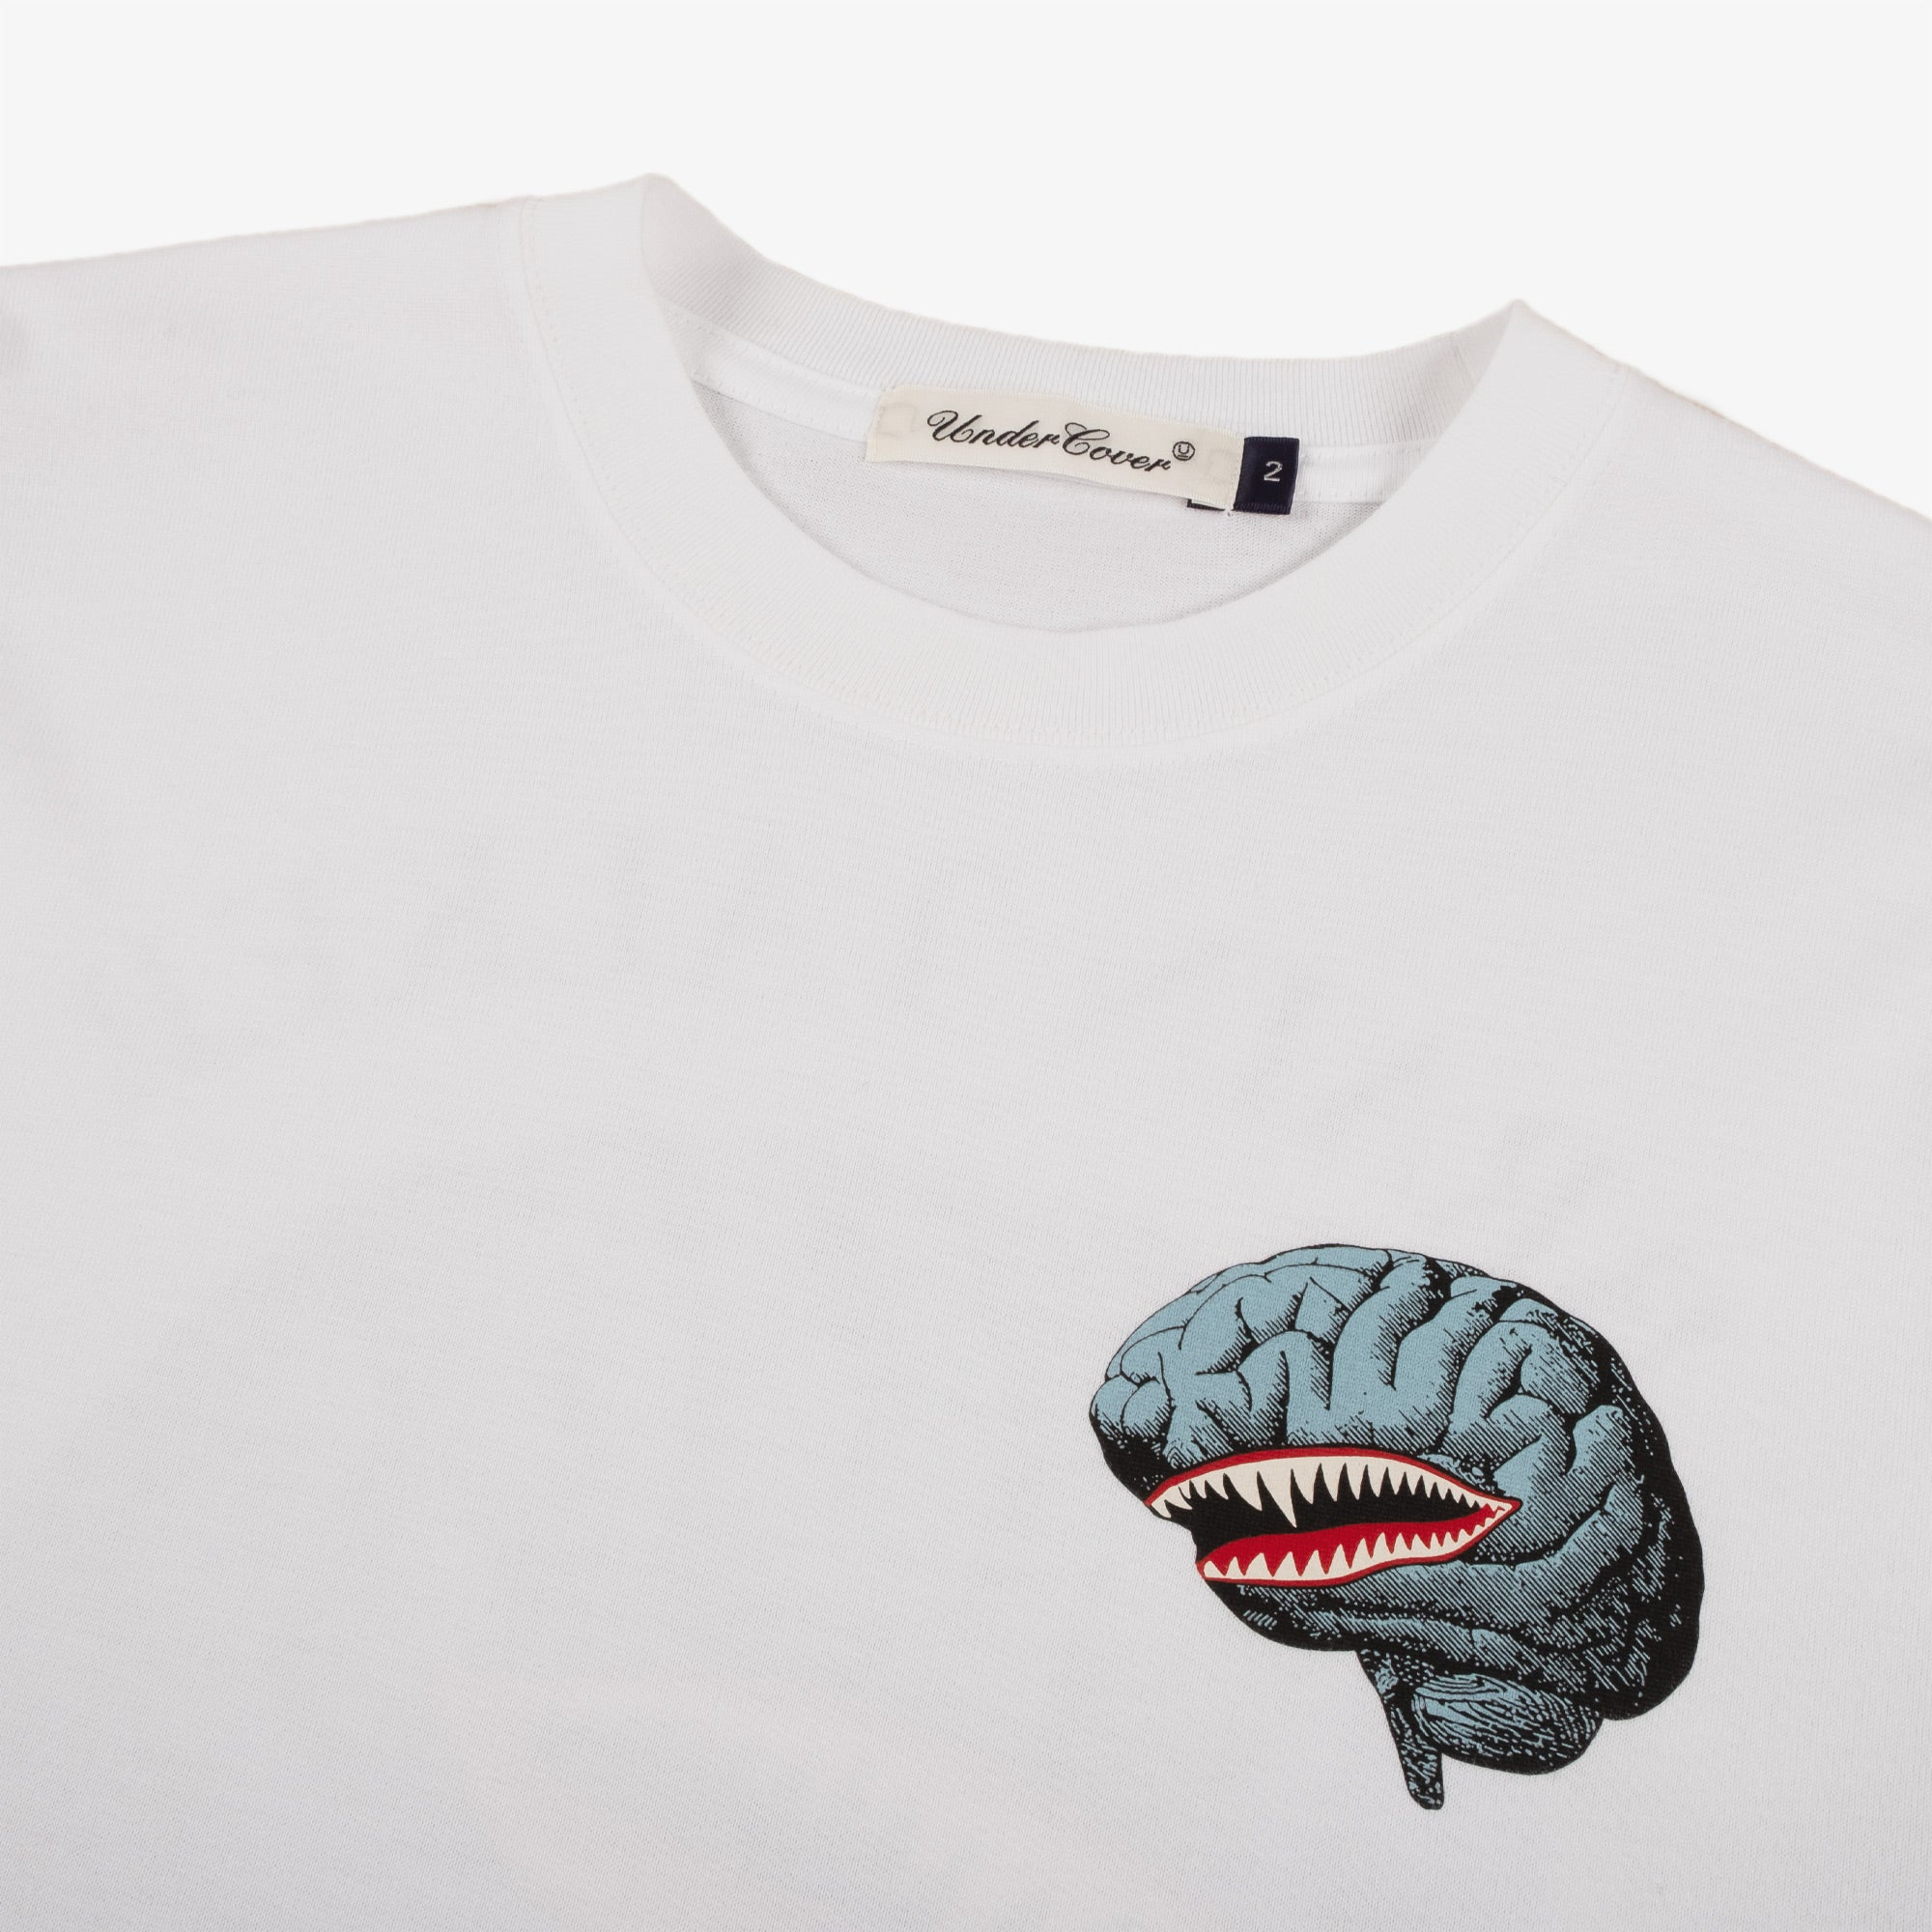 Undercover Brains Tee UC2A4892-1 - White 3